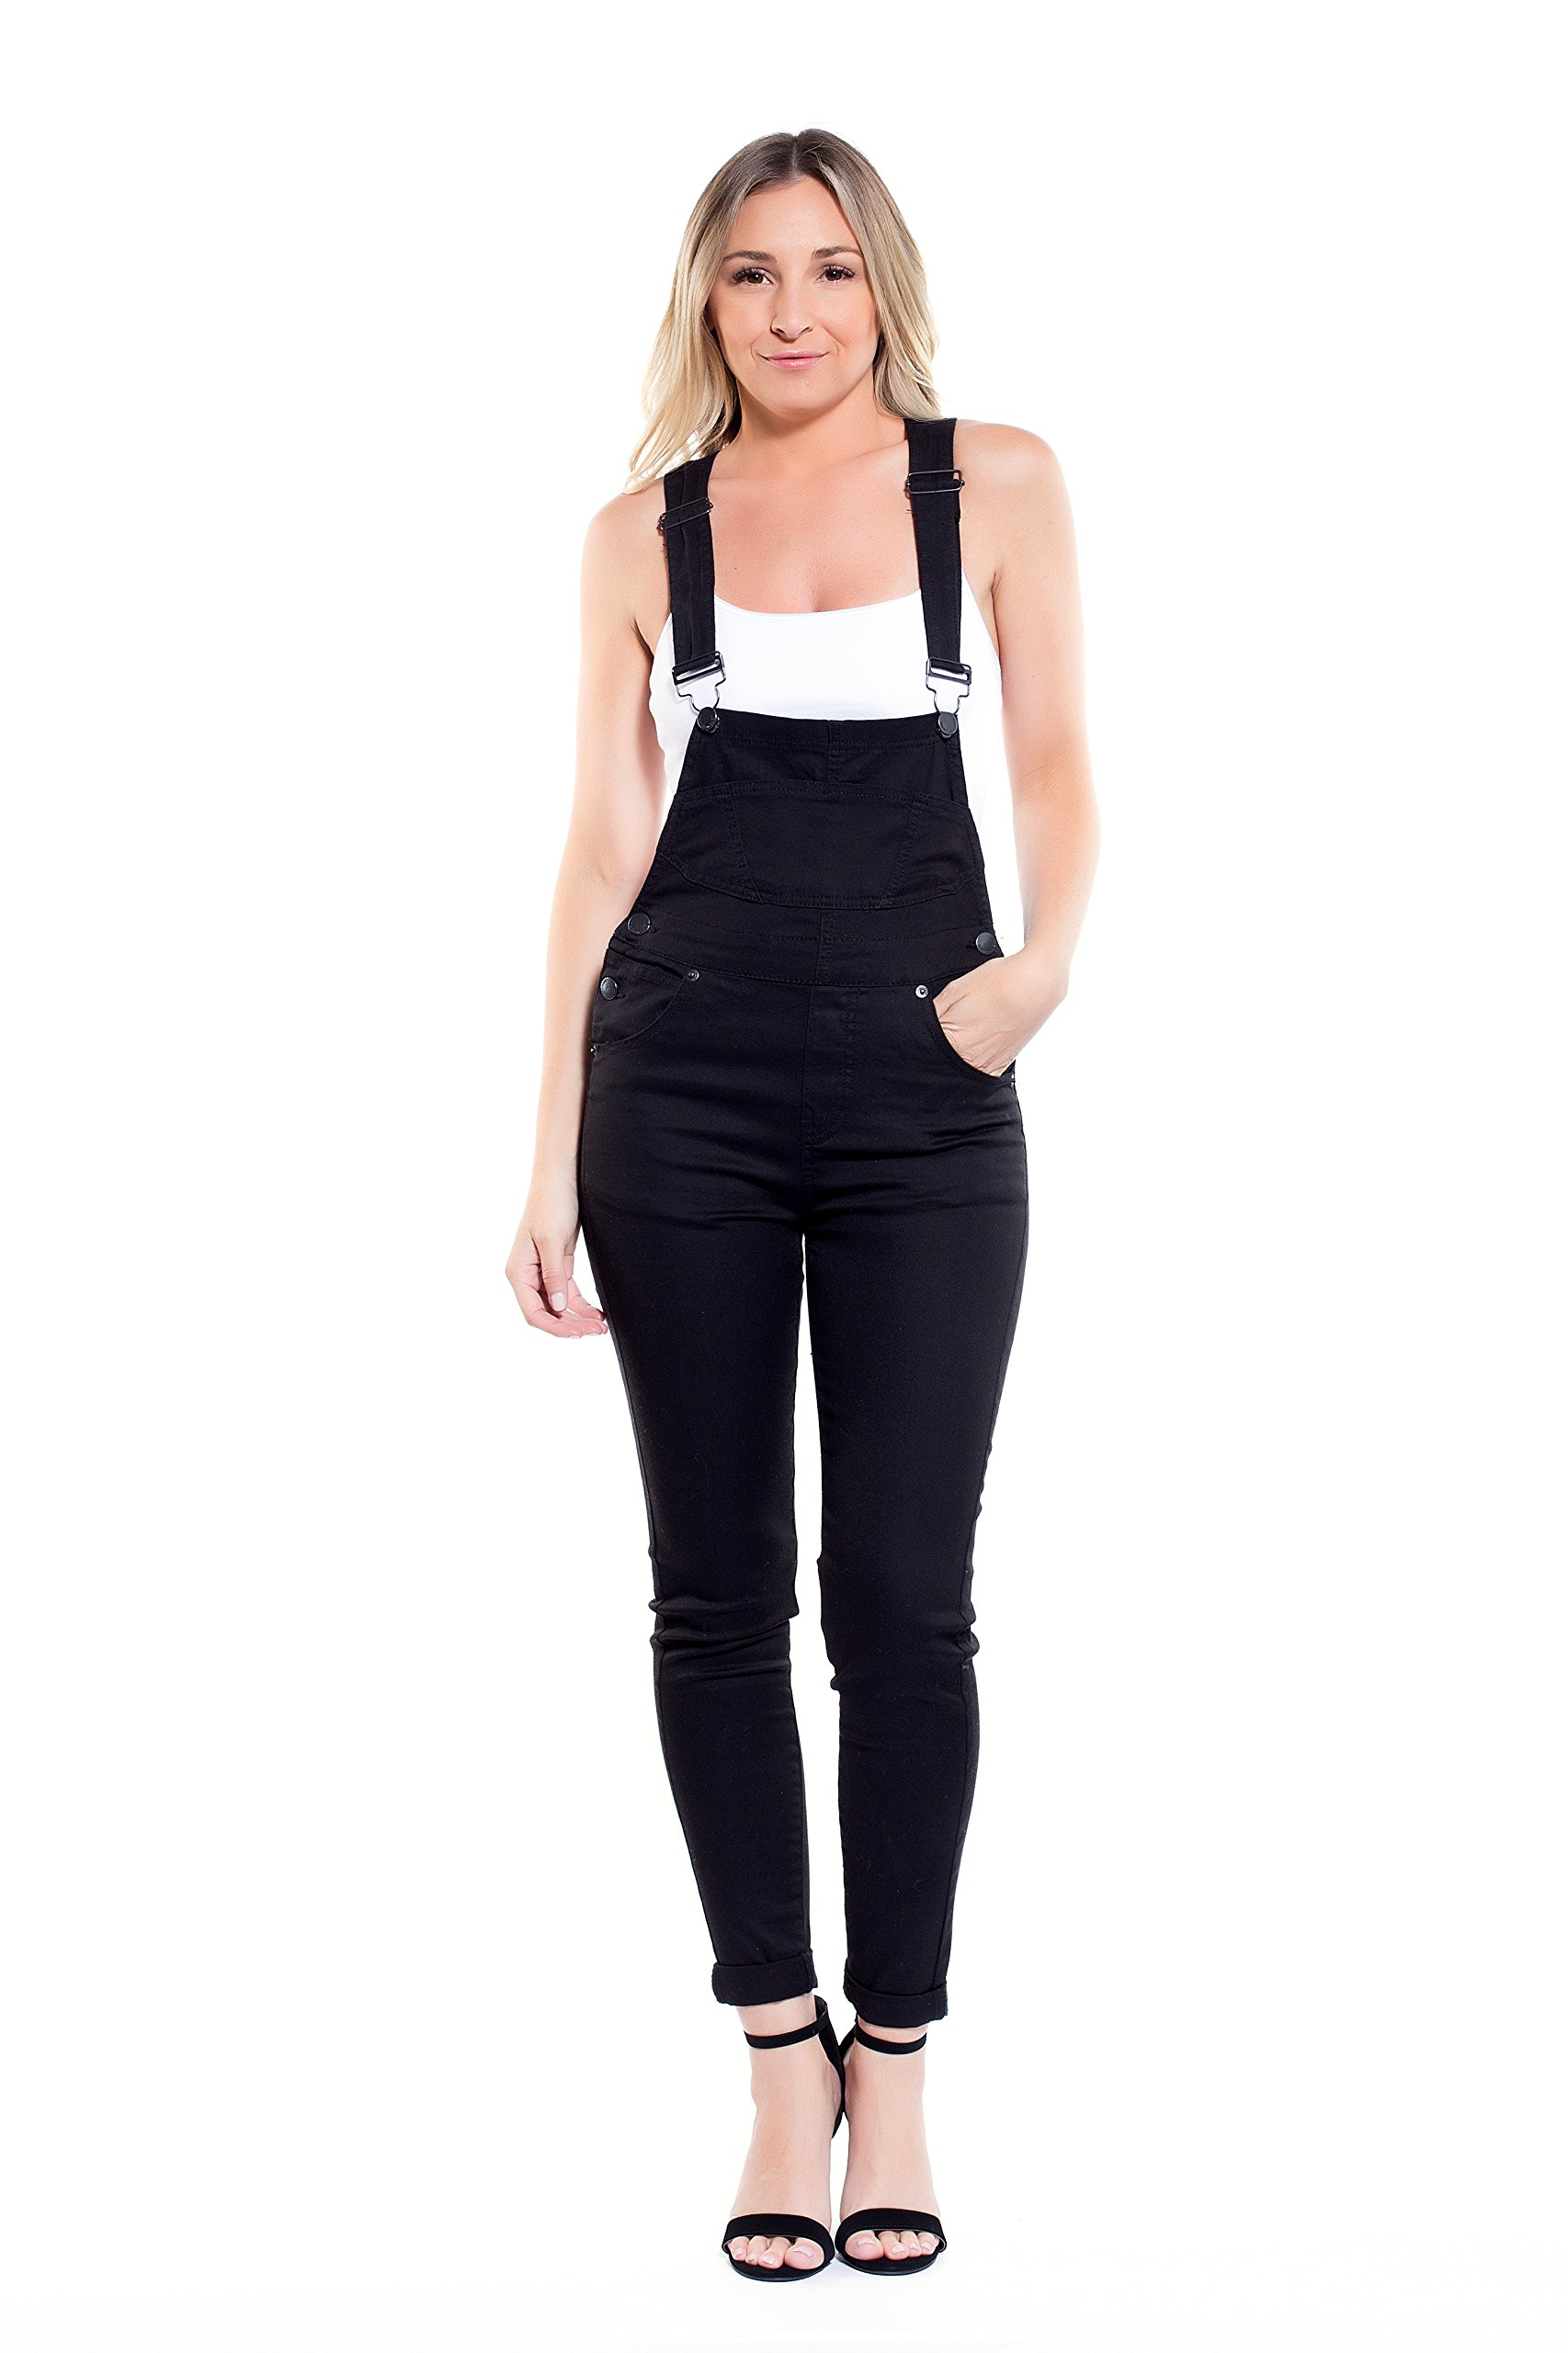 Instar Mode Women's Classic Casual Overalls Jumpsuits in Various Styles (RL30814 Black, Medium)